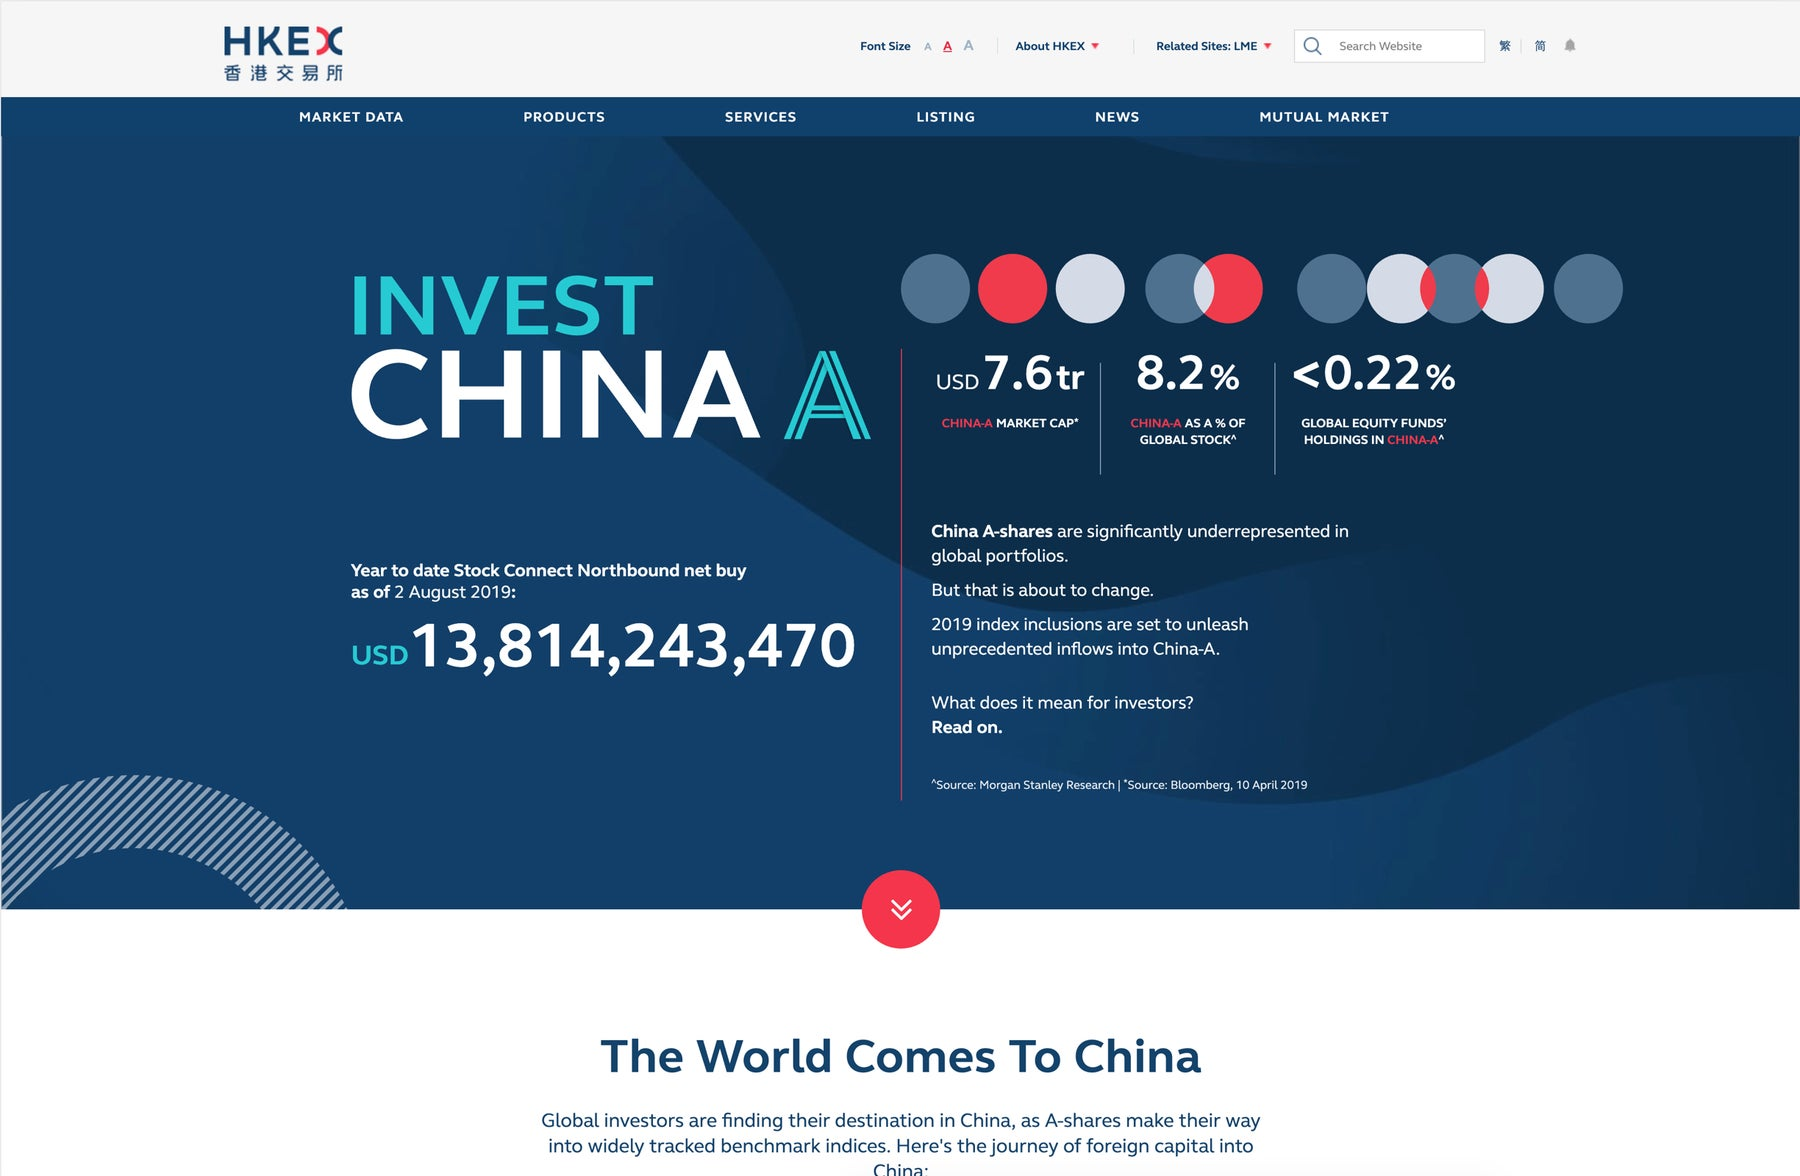 Showcasing the potential of the Chinese Market to global investors